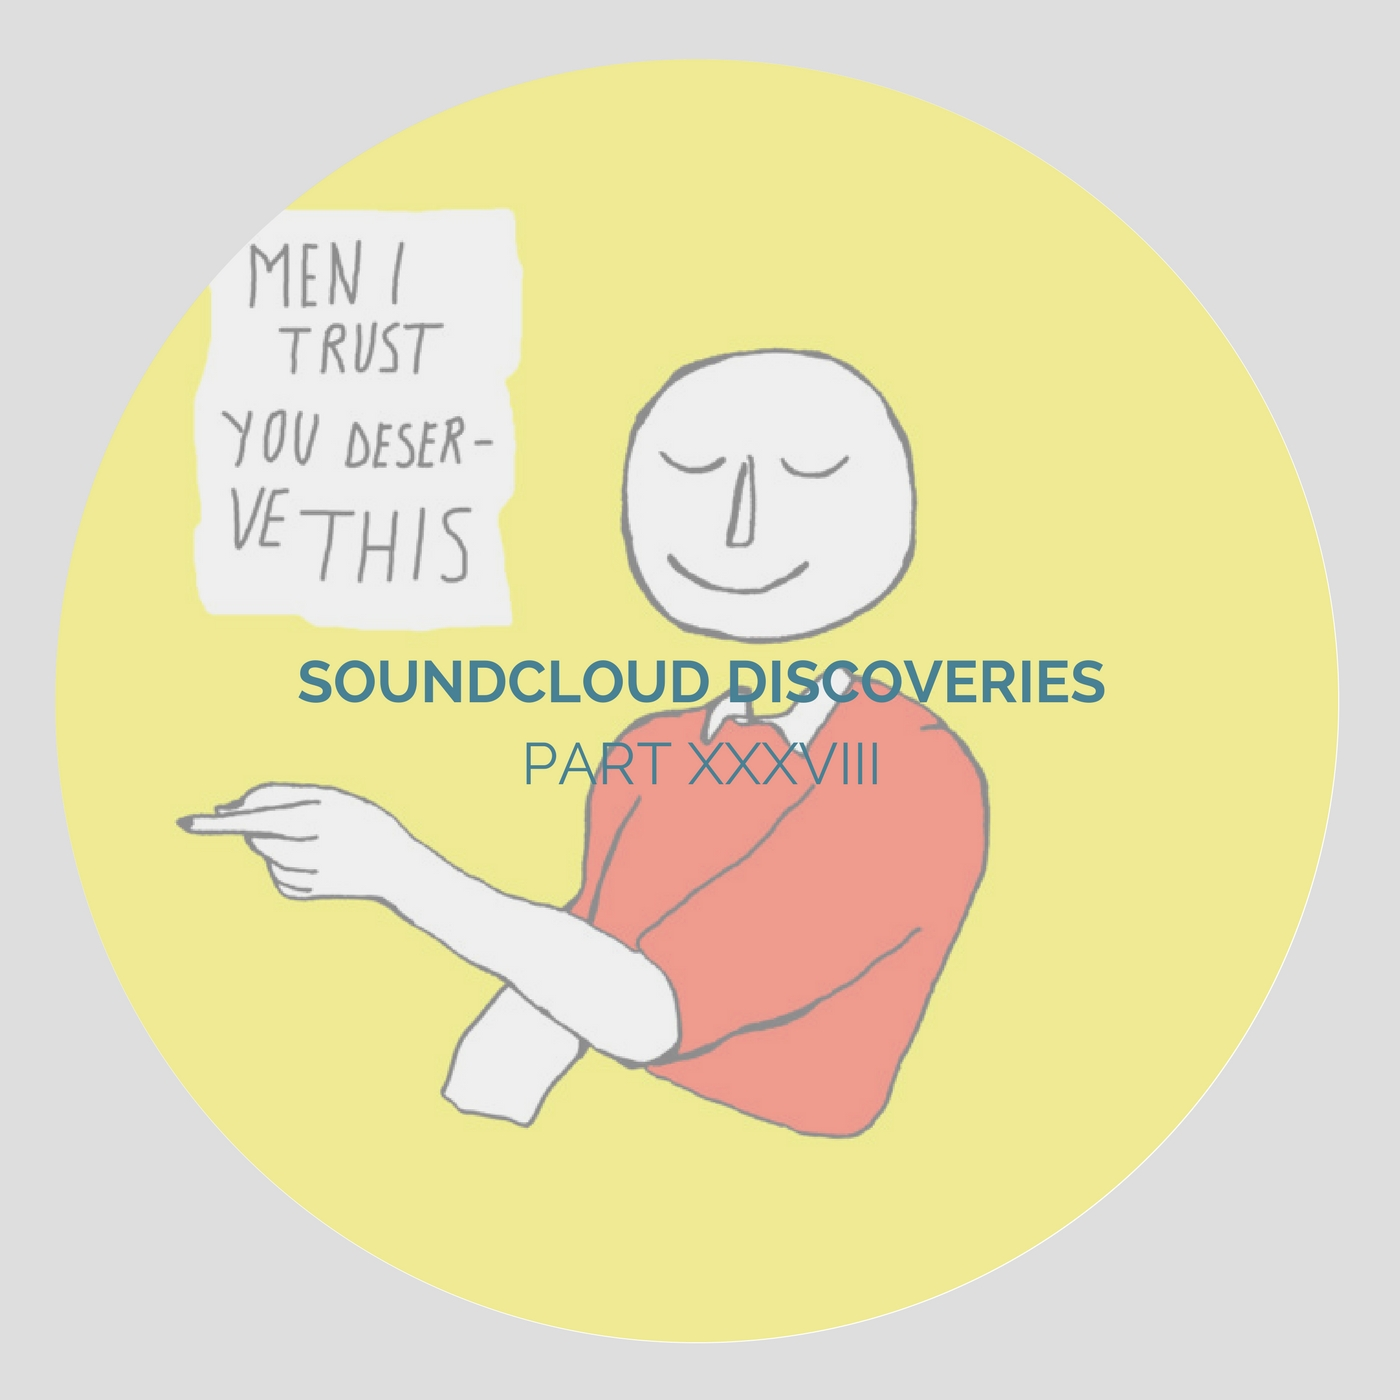 playlist-soundcloud discoveries part xxxviii-indie music-indie pop-indie rock-remix-new music-music blog-indie blog-wolfinasuit-wolf in a suit